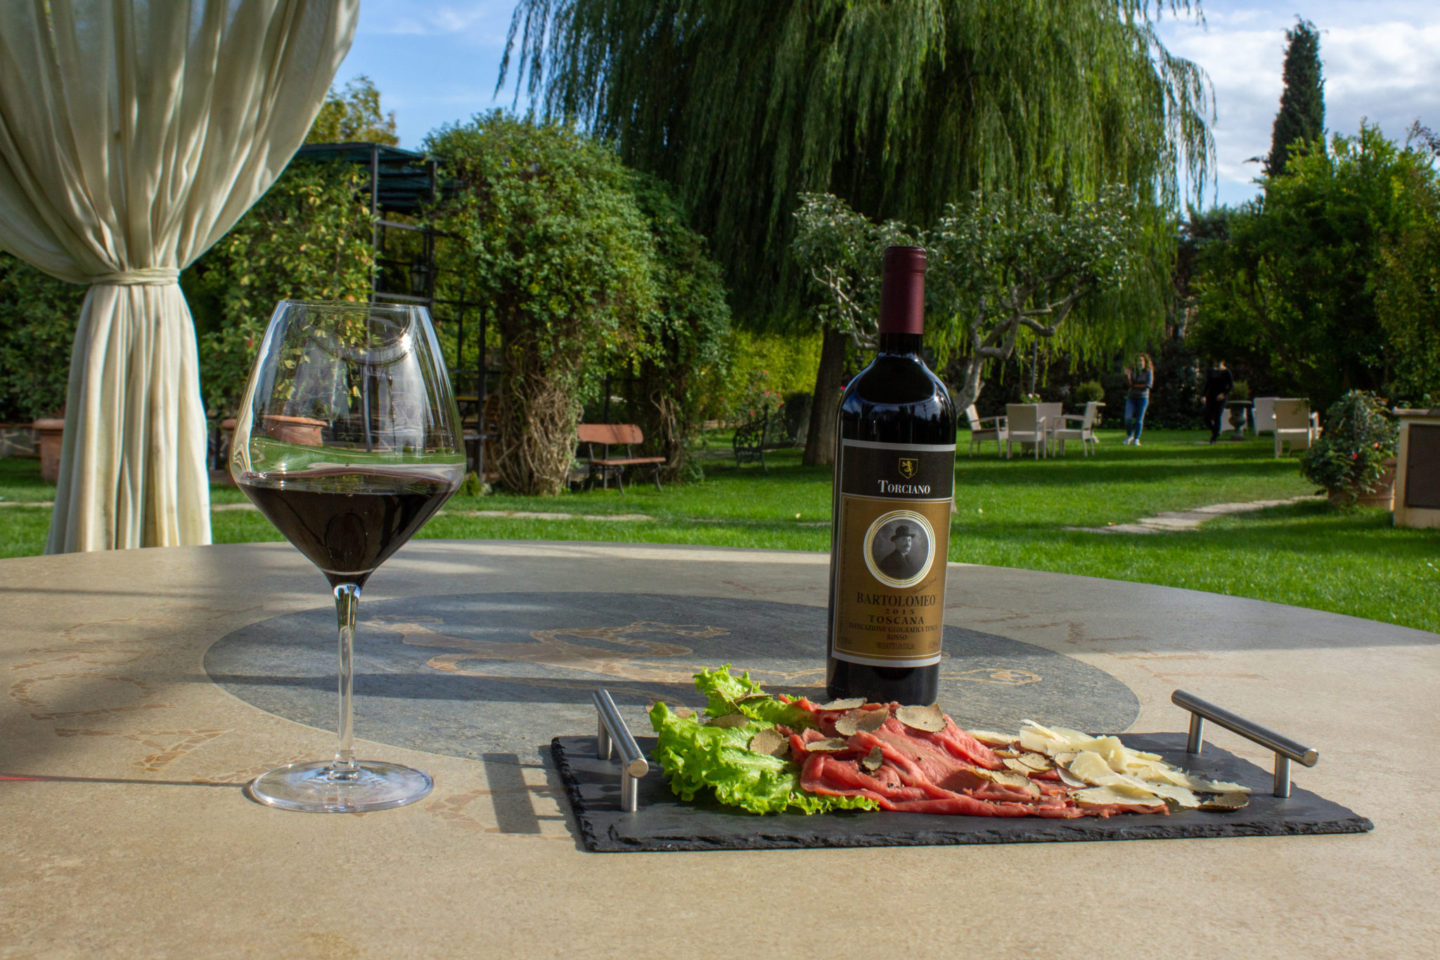 Torcianowinery